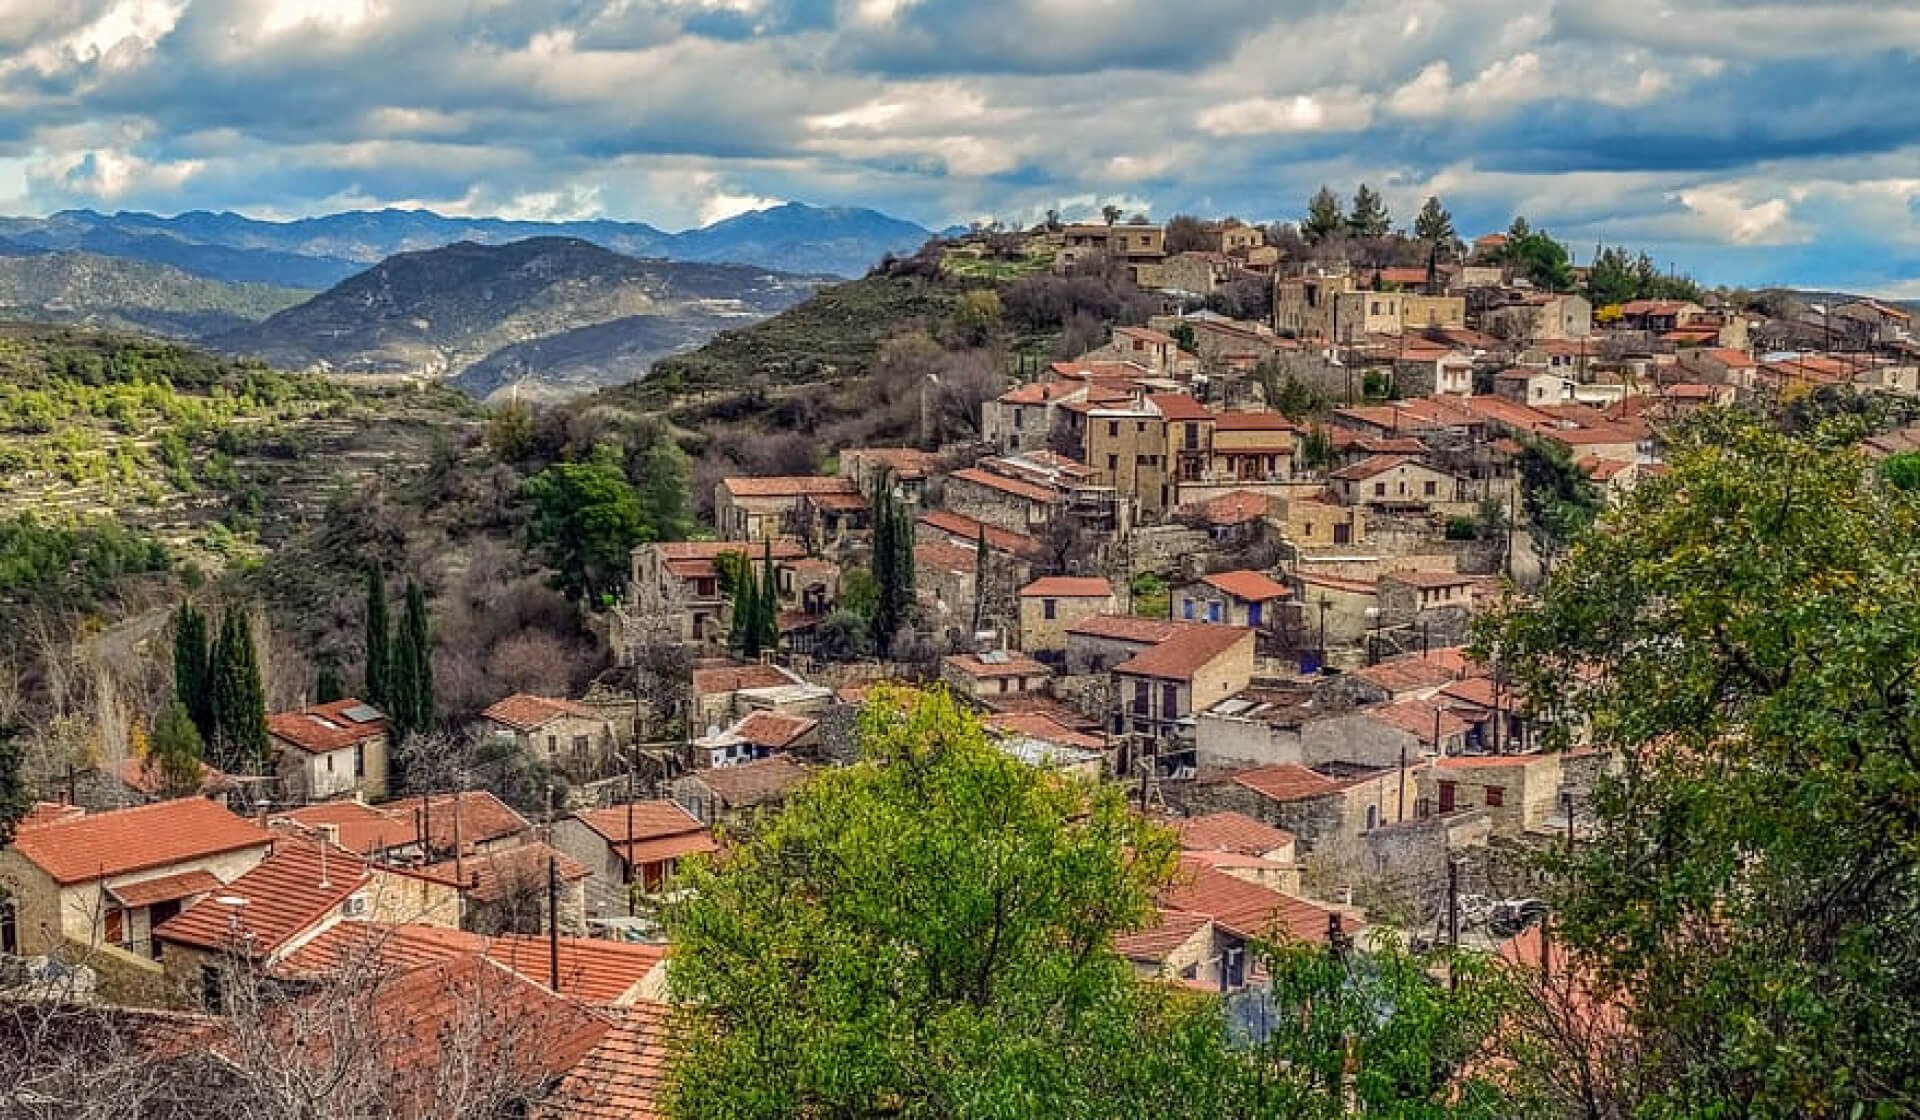 Panoramic view of an old village town built into the Troodos Mountains in Cyprus